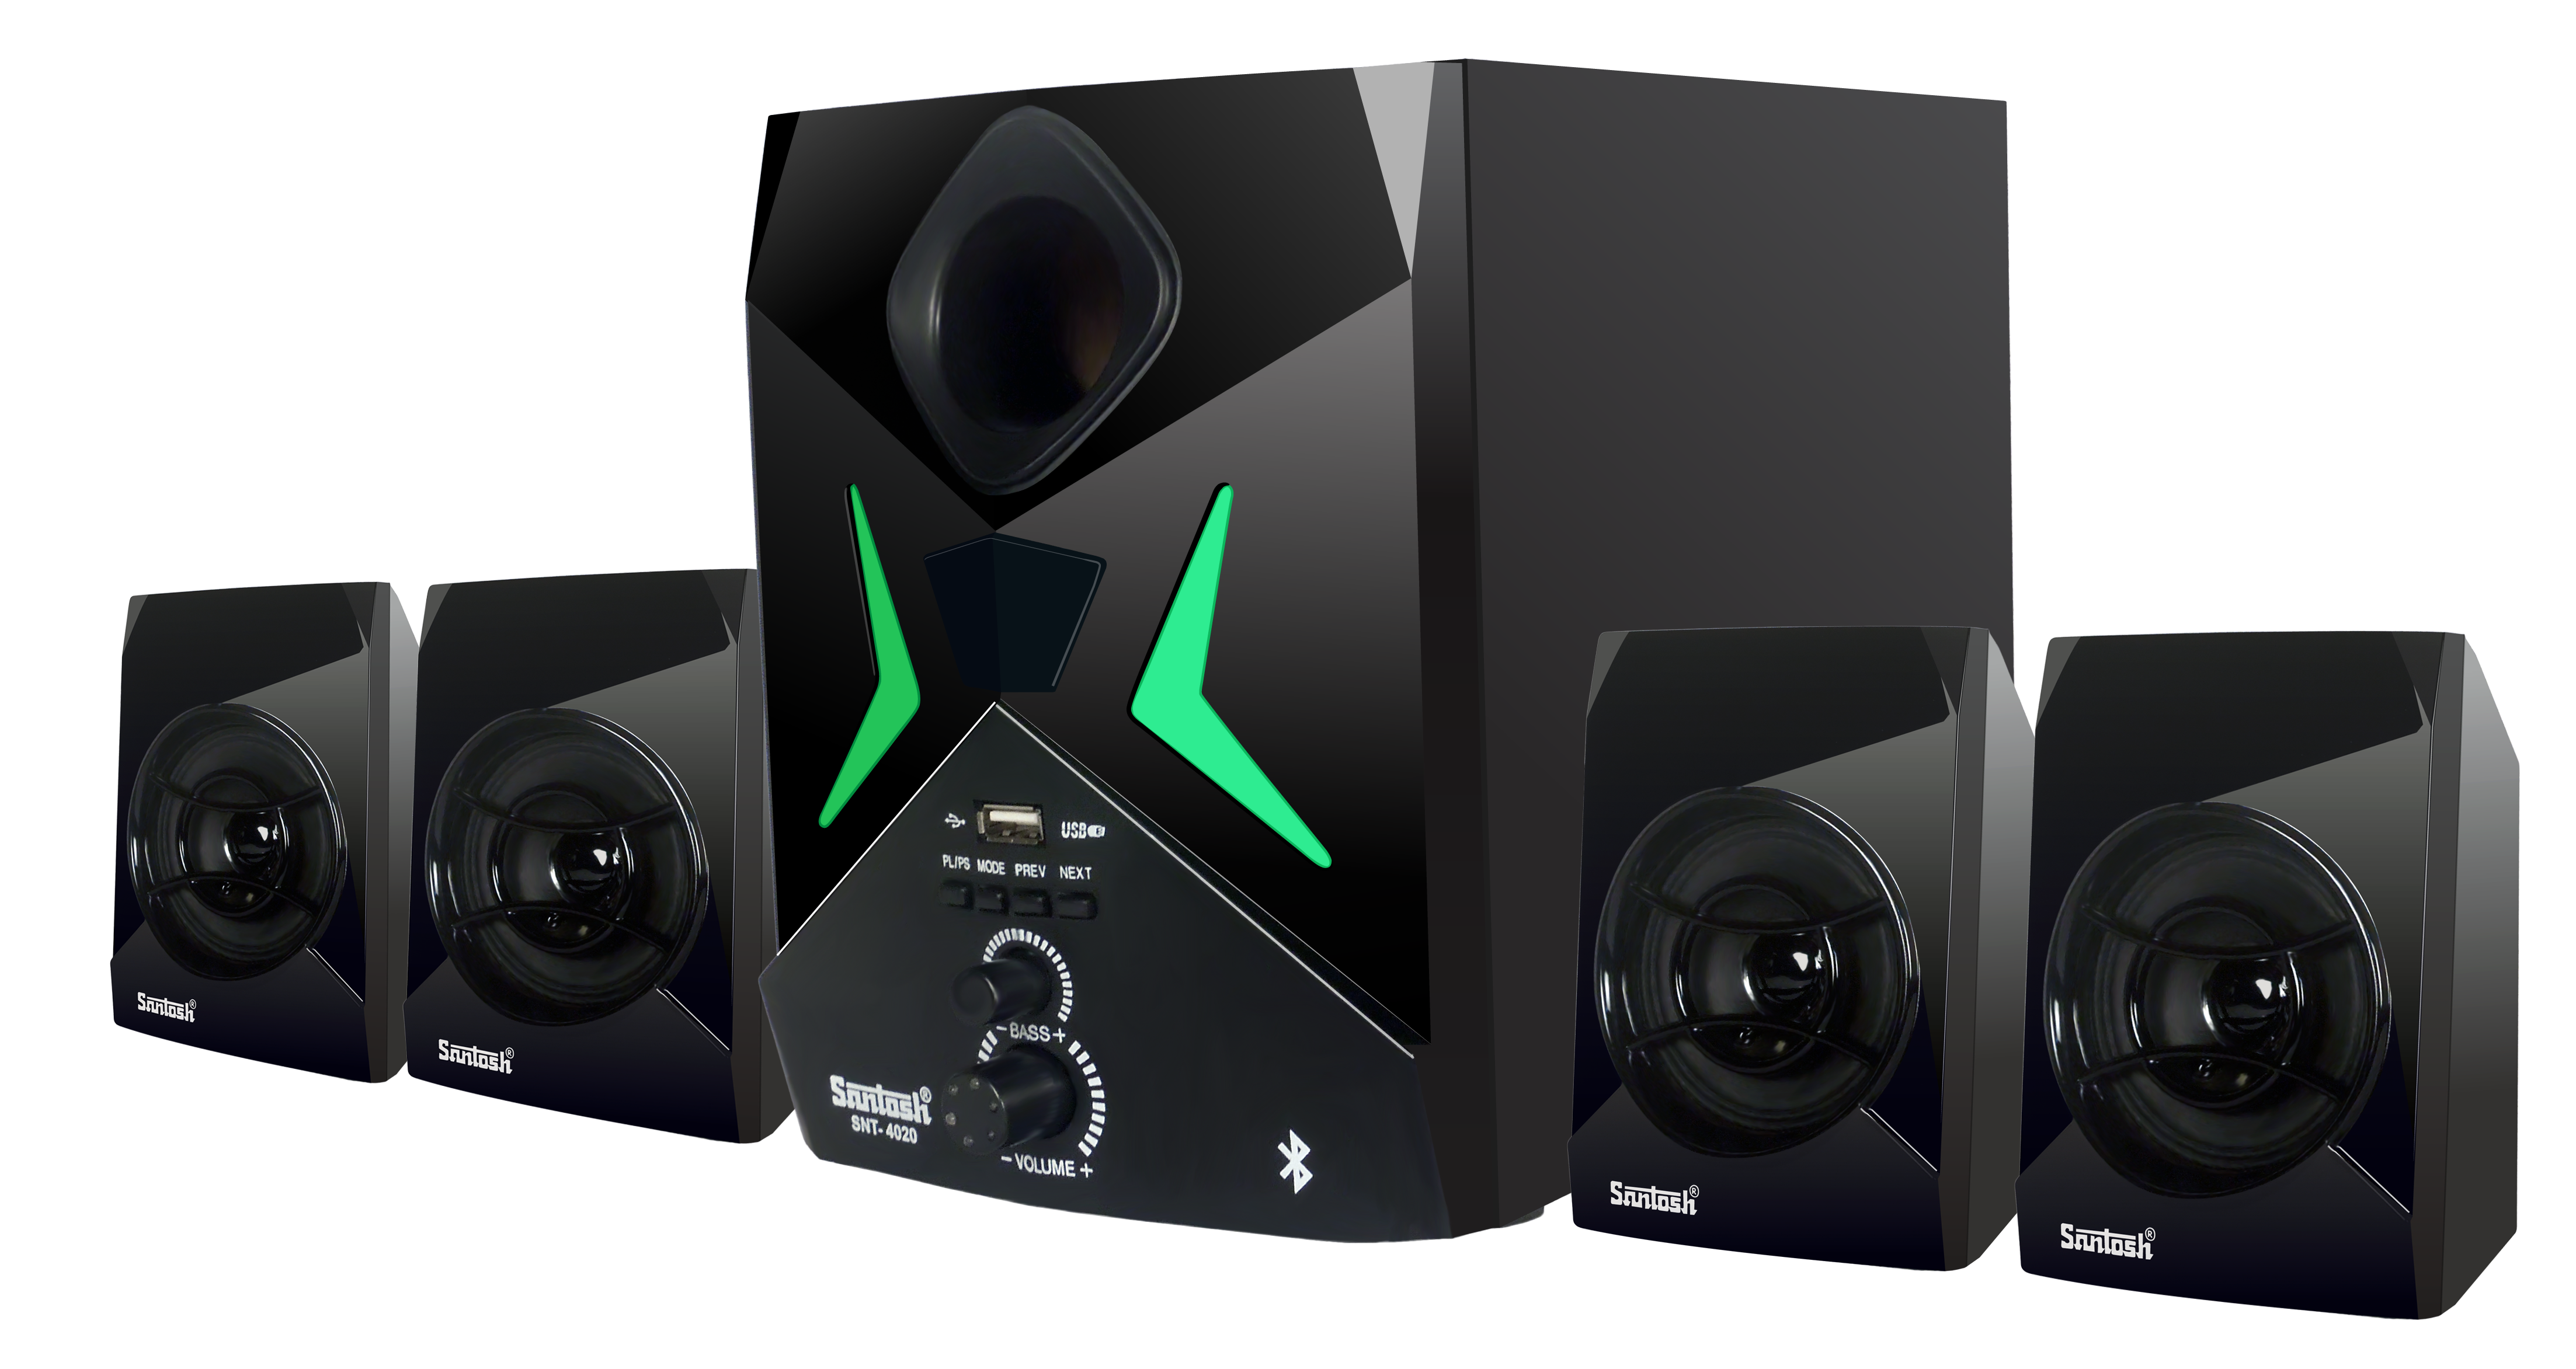 Home theater png. Buy santosh speaker system